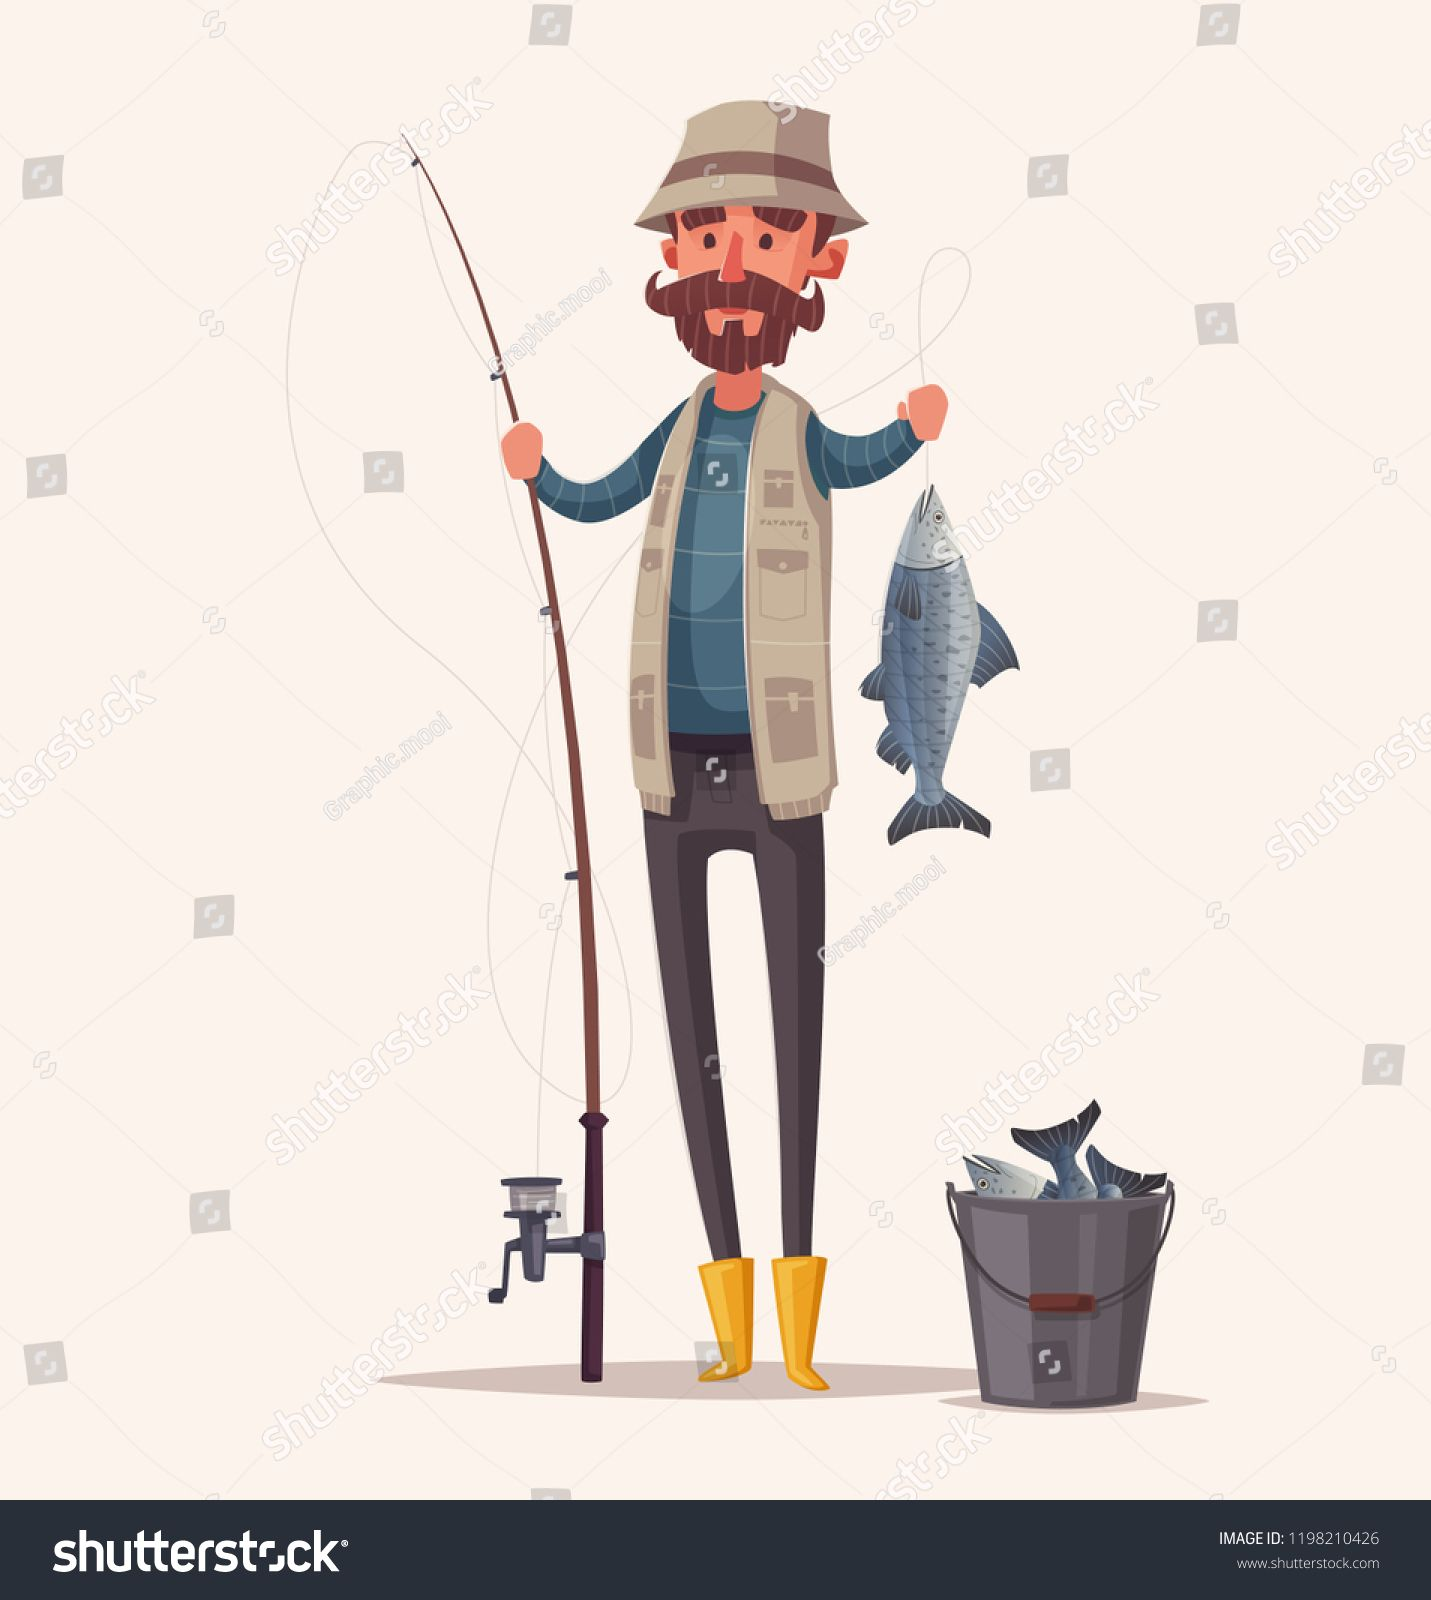 Fisherman With Fishing Rod Fishing Concept Cartoon Vector Illustration Catch A Fish Ad Affiliate Fishing Concept Fish Illustration Cartoon Boy Fishing